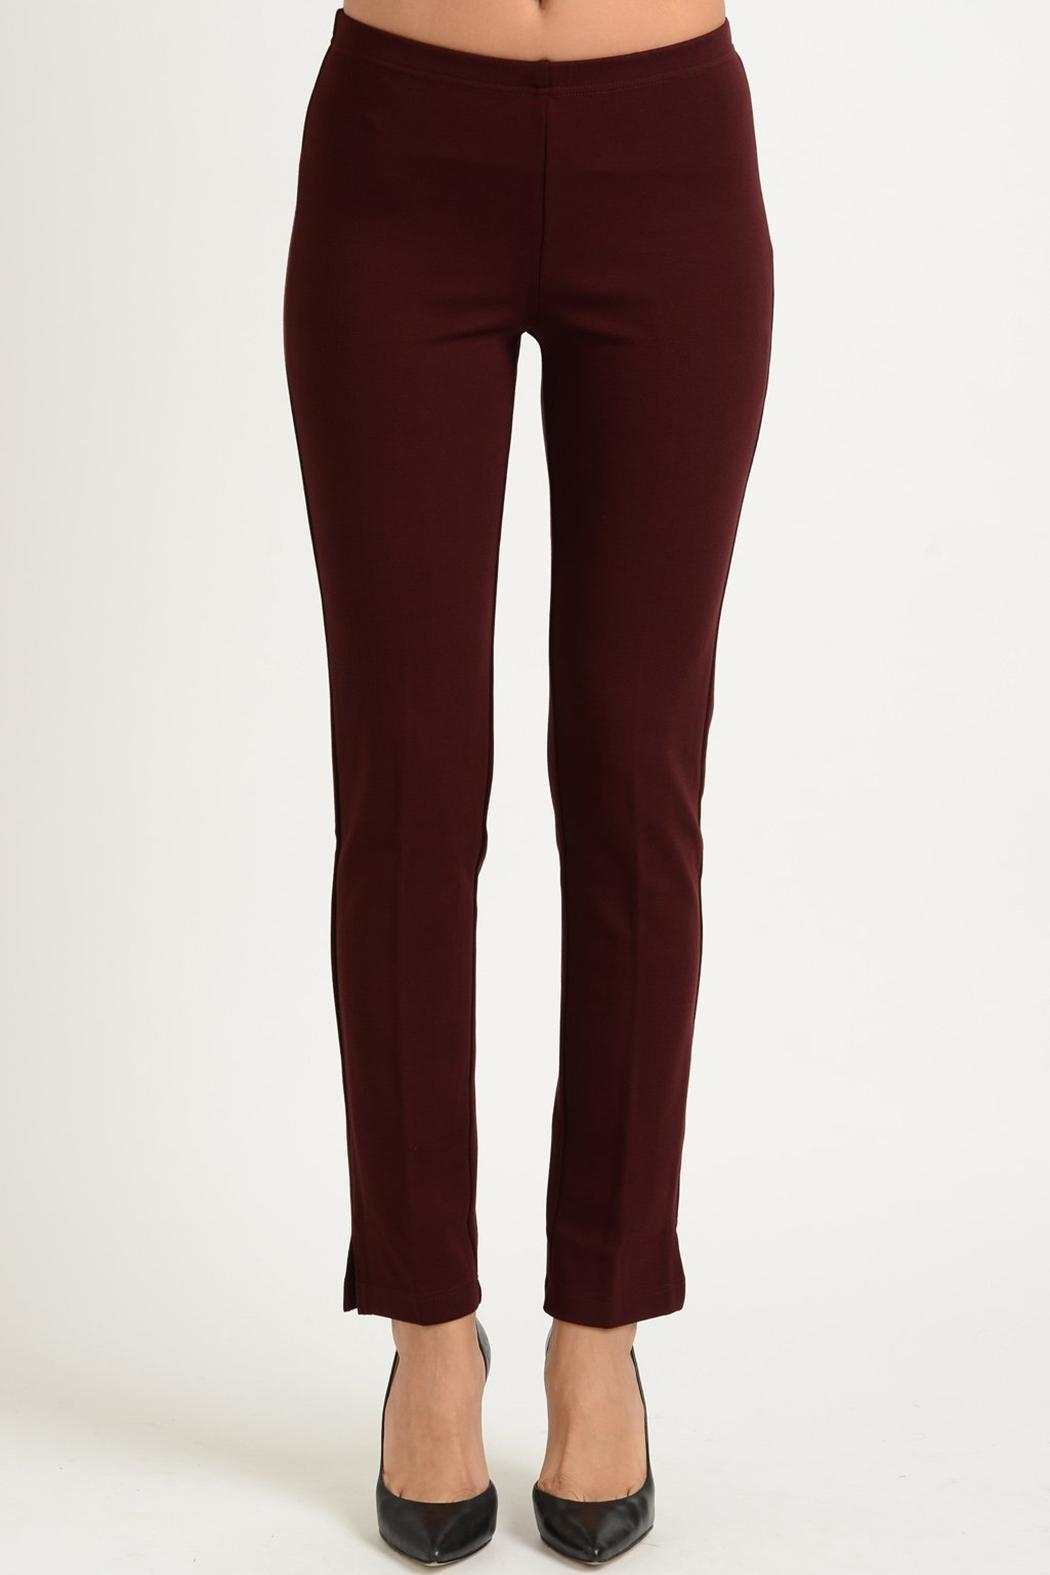 Lynn Ritchie Perfect Pant - Main Image